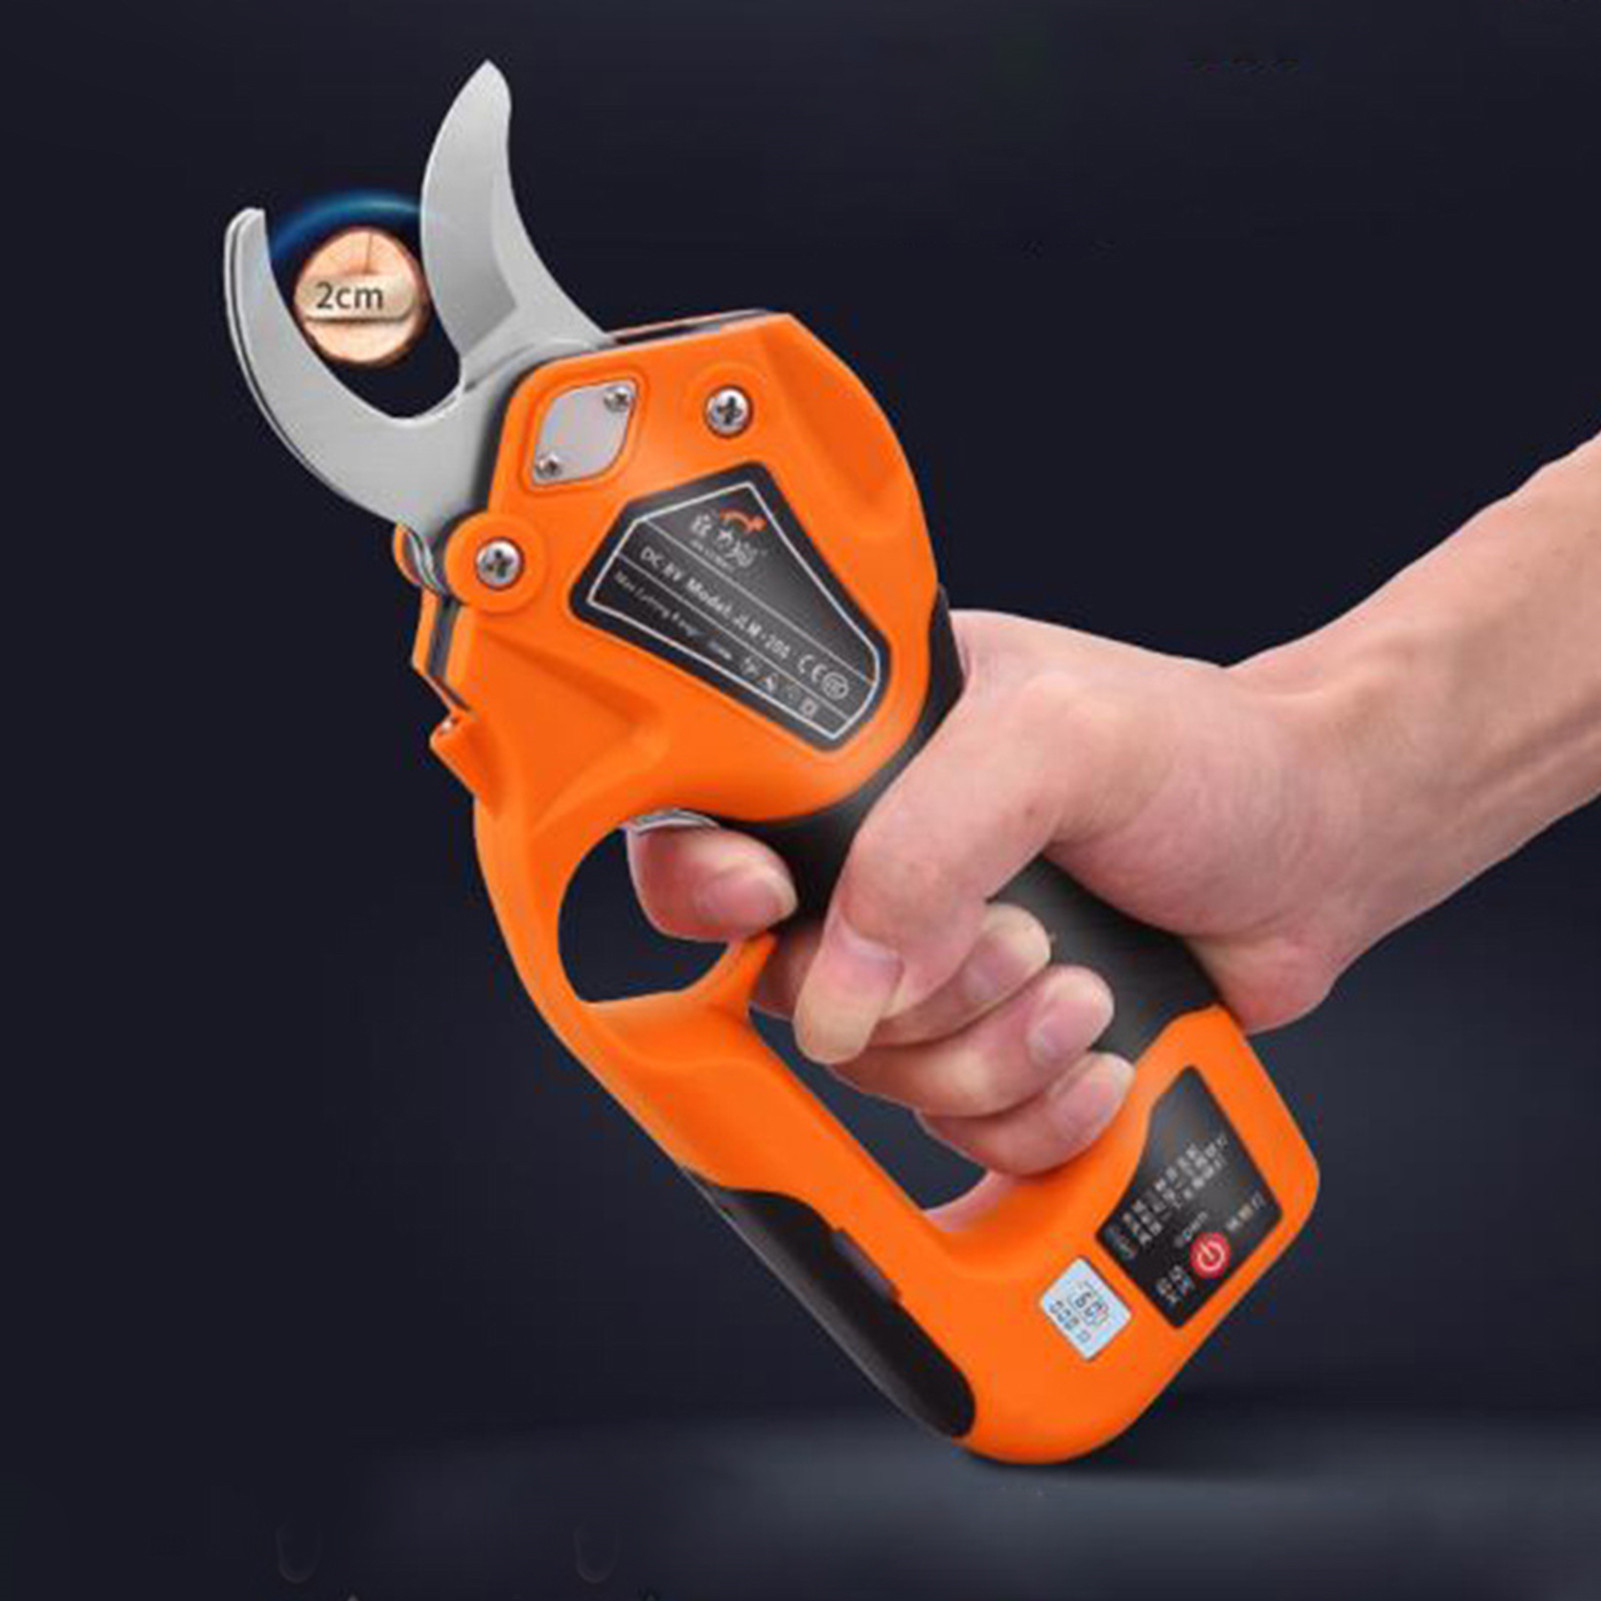 Tools : Cordless Pruner Electric Trimmer Lithium Battery Pruning Shear Fruit Tree Branch Cutter Landscaping Scissor Garden Power Tool